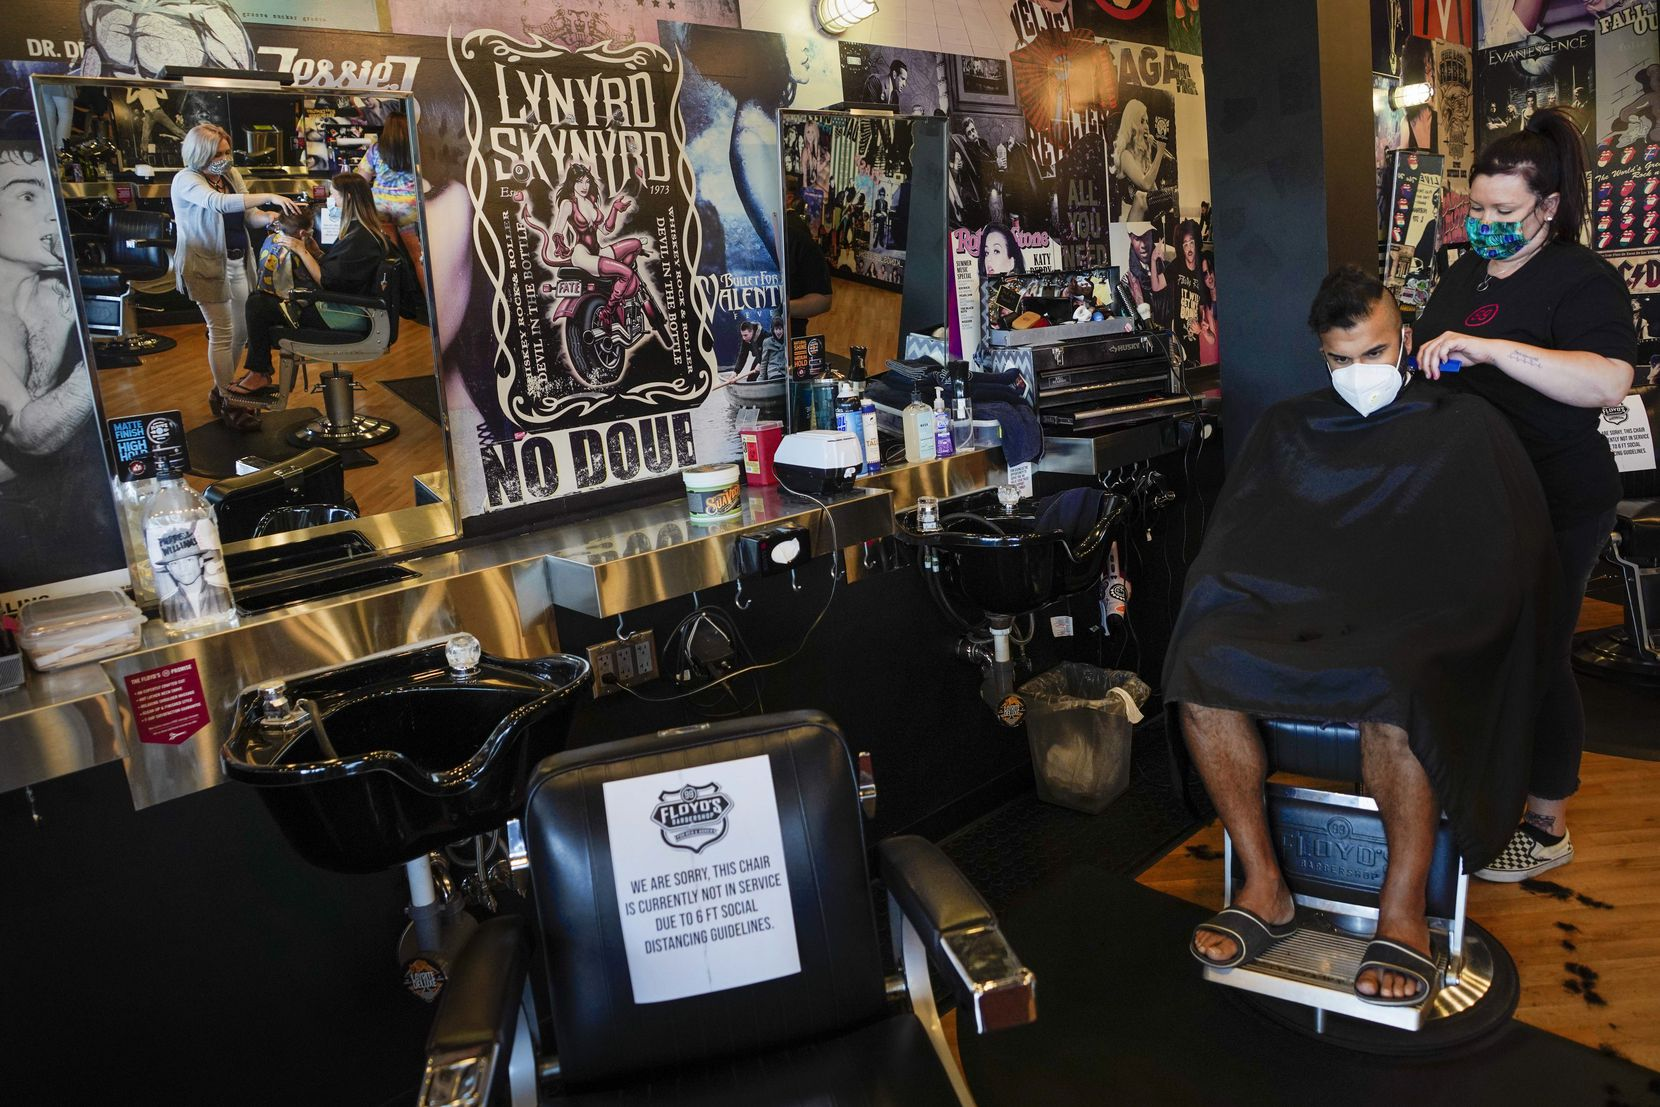 Abid Kabani had his hair cut by stylist Jackie Tomberlin at Floyd's 99 Barbershop in Richardson on May 8, 2020, the first day salons and barber shops were allowed to reopen after a lengthy closure due to the COVID-19 pandemic.